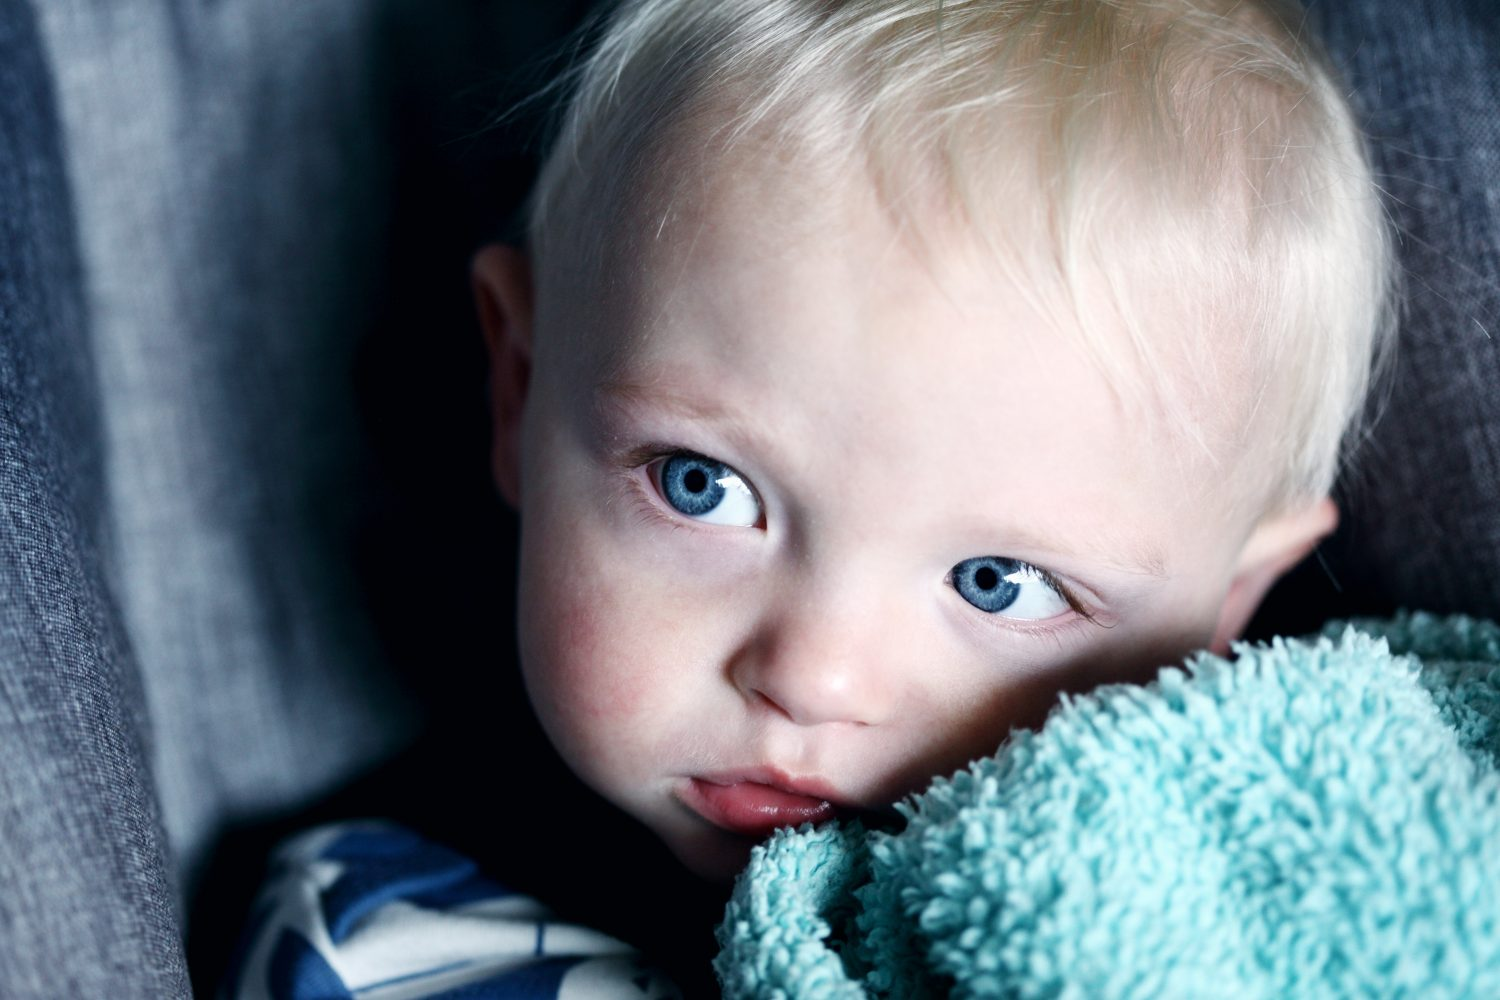 First Aid for Babies: 8 Quick Tips to Keep Kids Safe